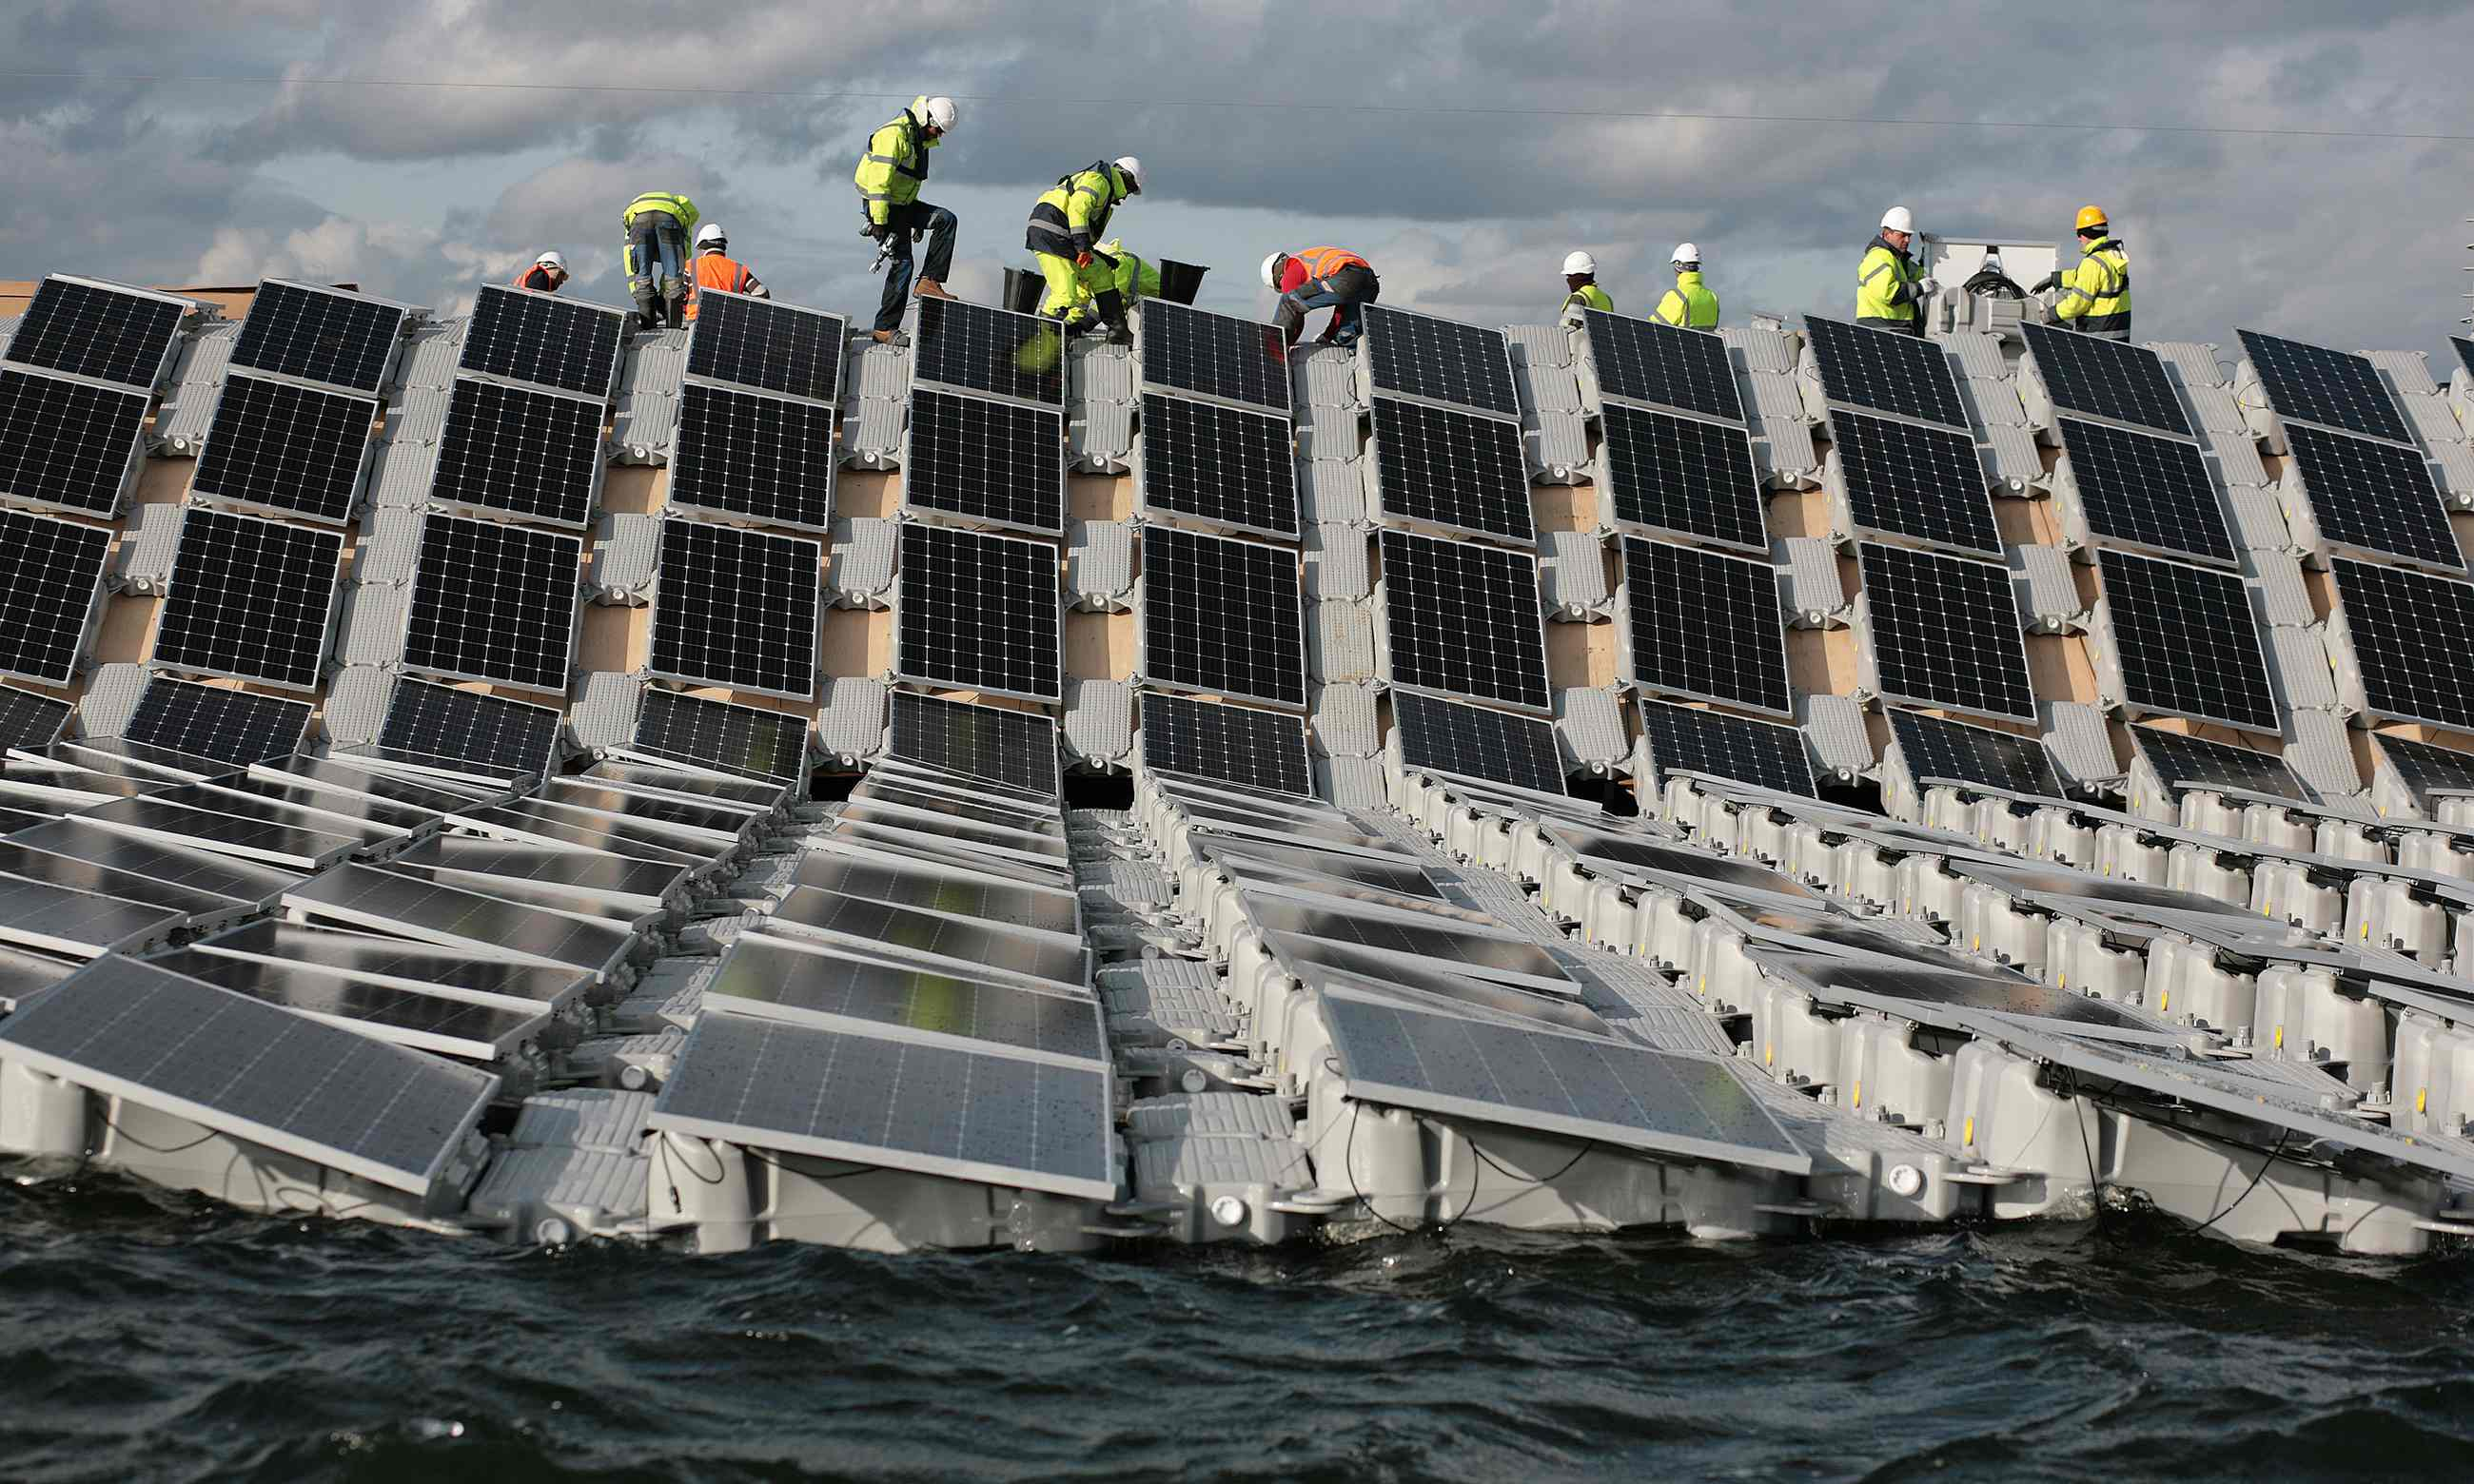 Europe is working on building their largest floating solar farm yet.